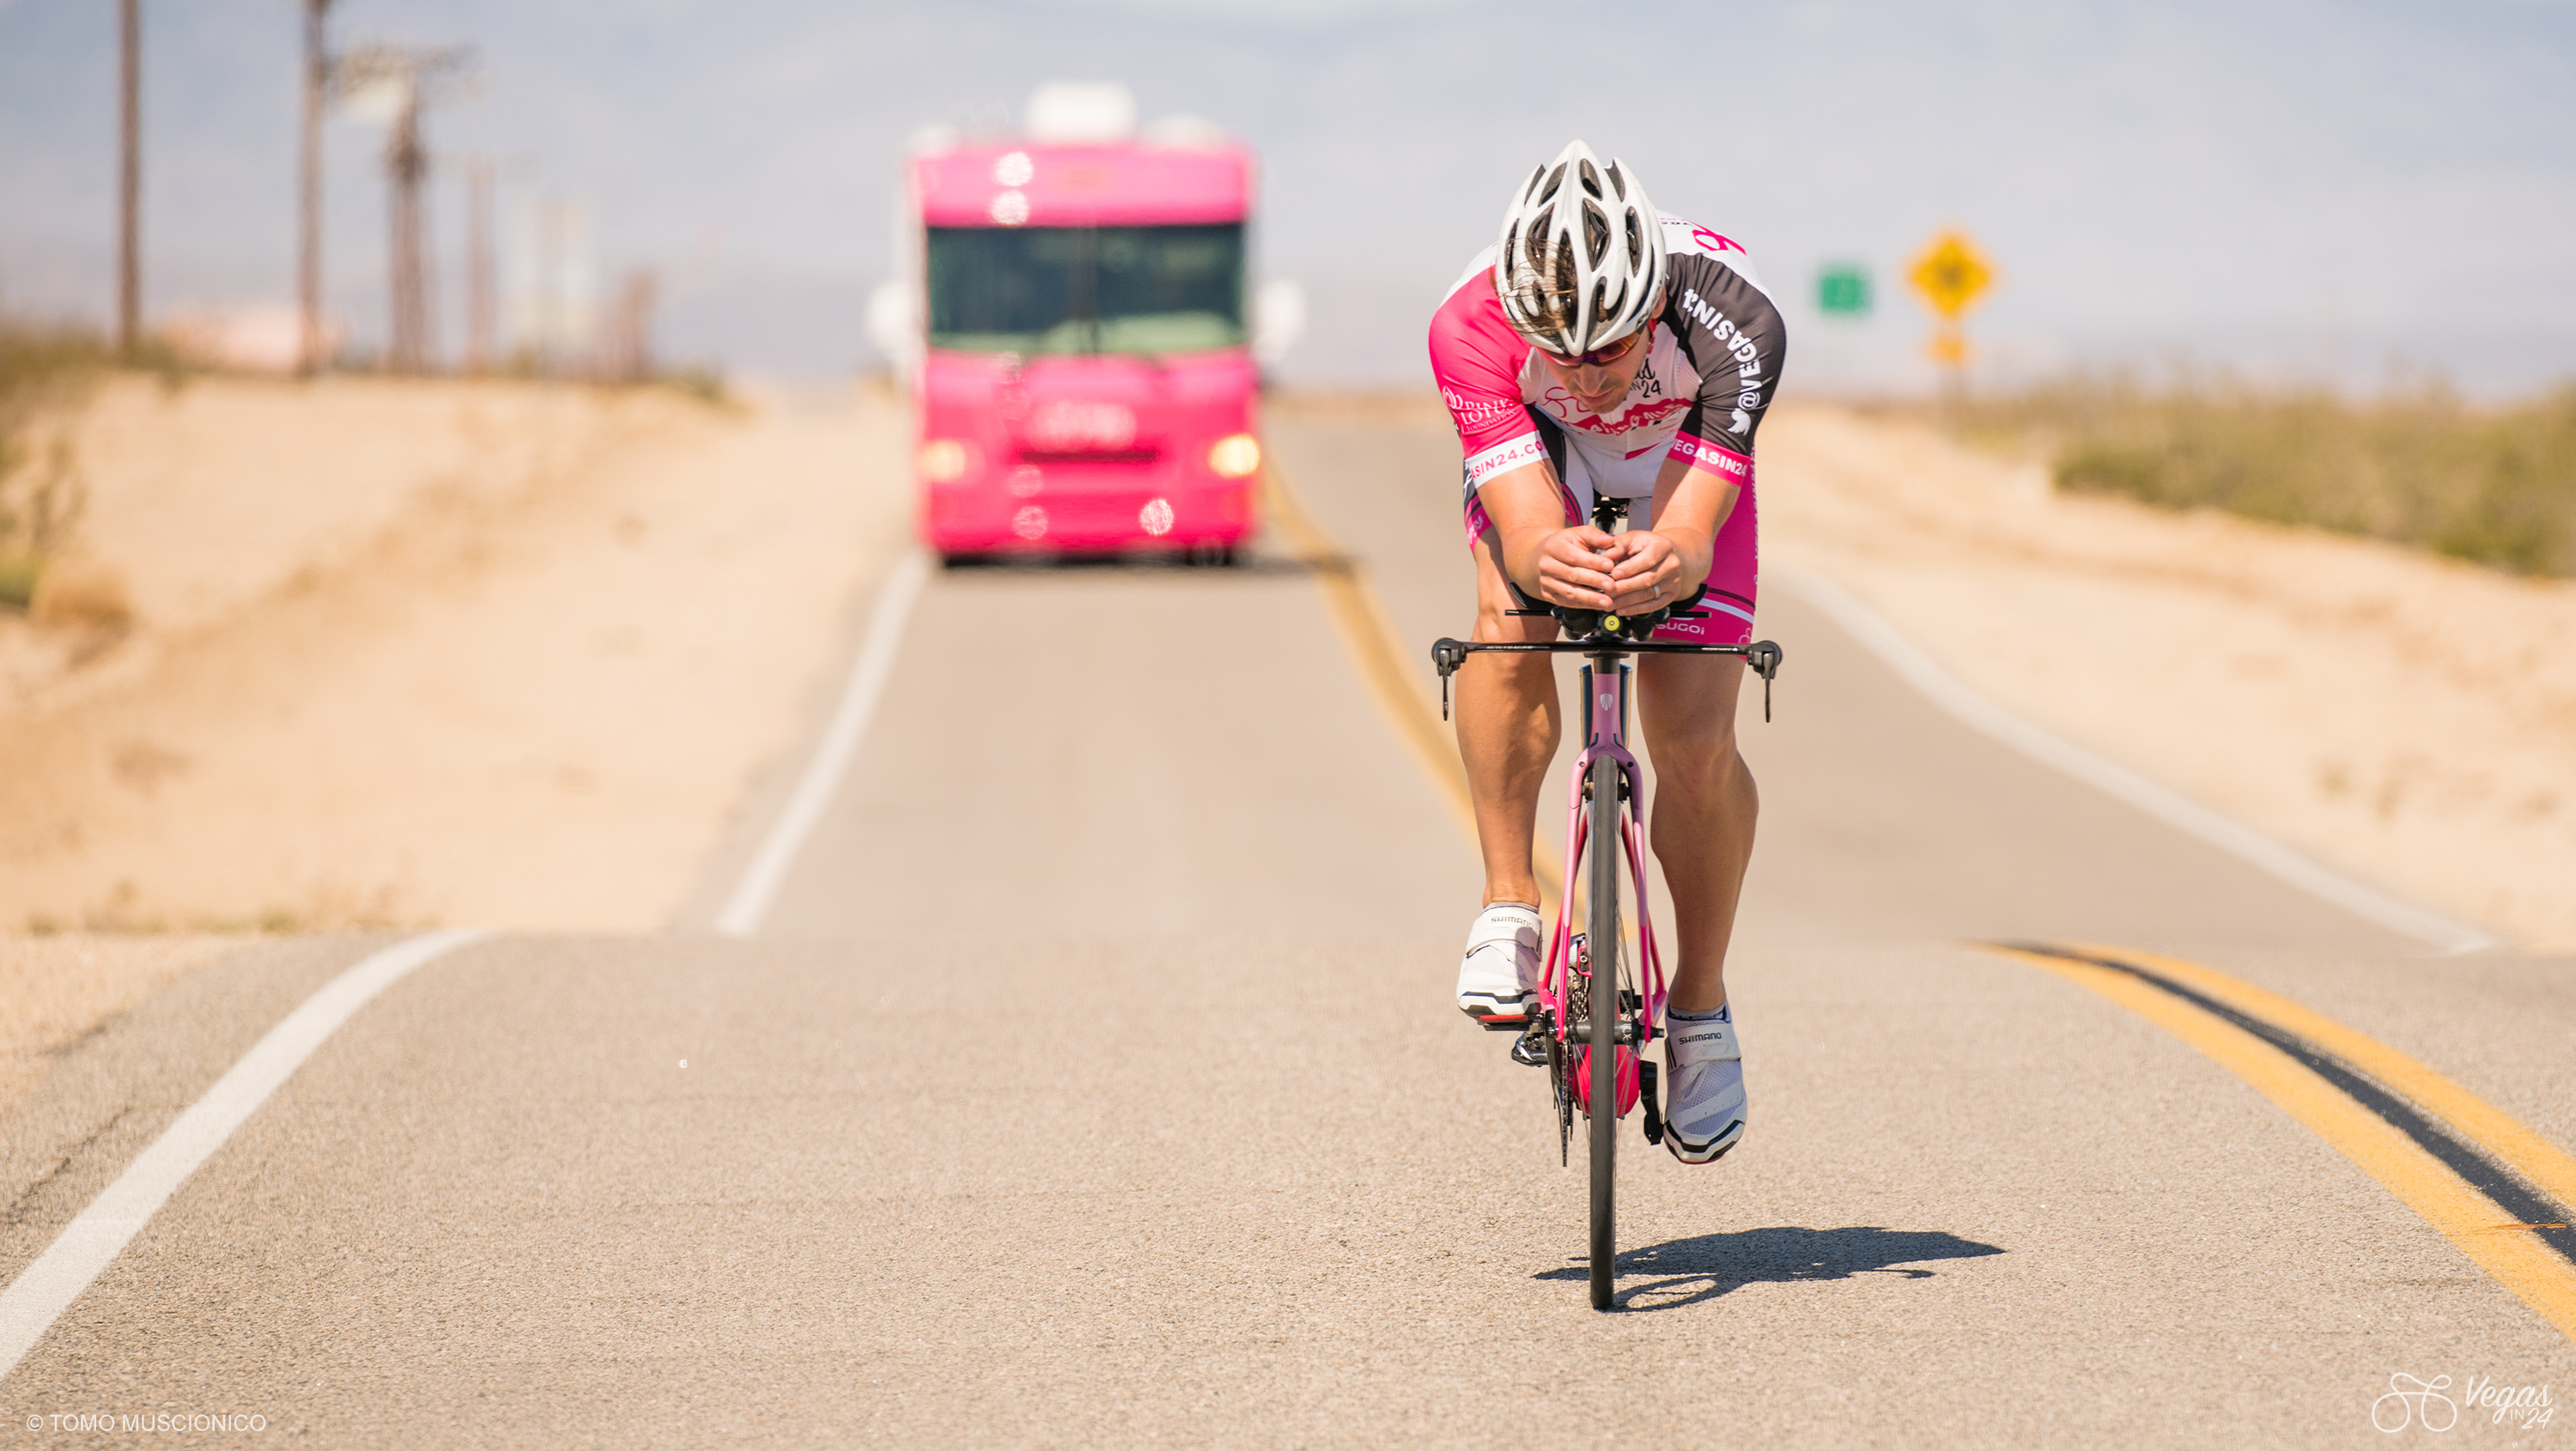 It isn't everyday that you see a pink bike and a pink RV roll through deserted valleys of sand and dust. Andy Funk is on an unstoppable pink mission.